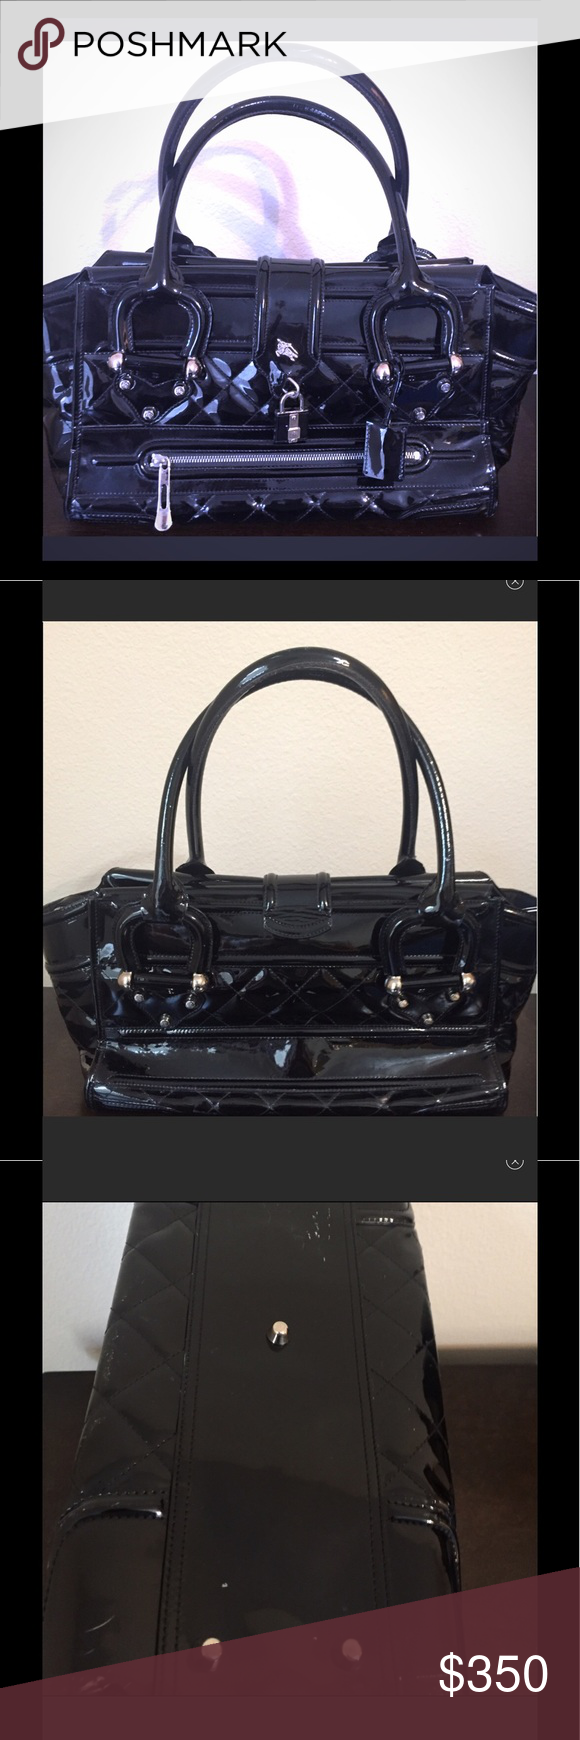 e3bb09e2f11c Burberry Manor Patent leather large tote Pre-loved. Authentic. Date code  ITTIVGRO58CAL. Handles has scuffs as you can see. Last photo is stock photo.